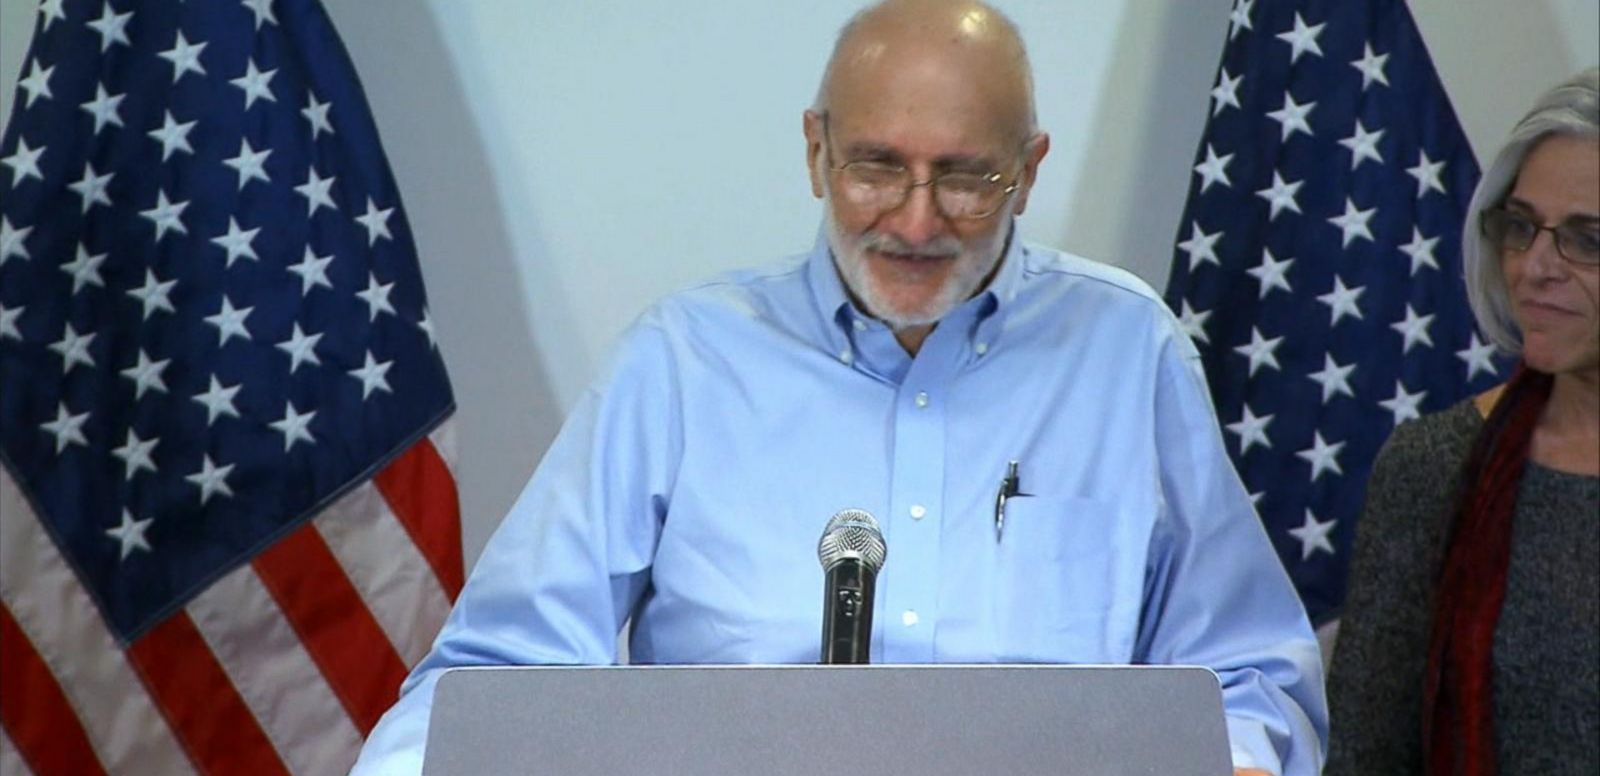 VIDEO: Alan Gross' Return a Breakthrough in US-Cuba Relations